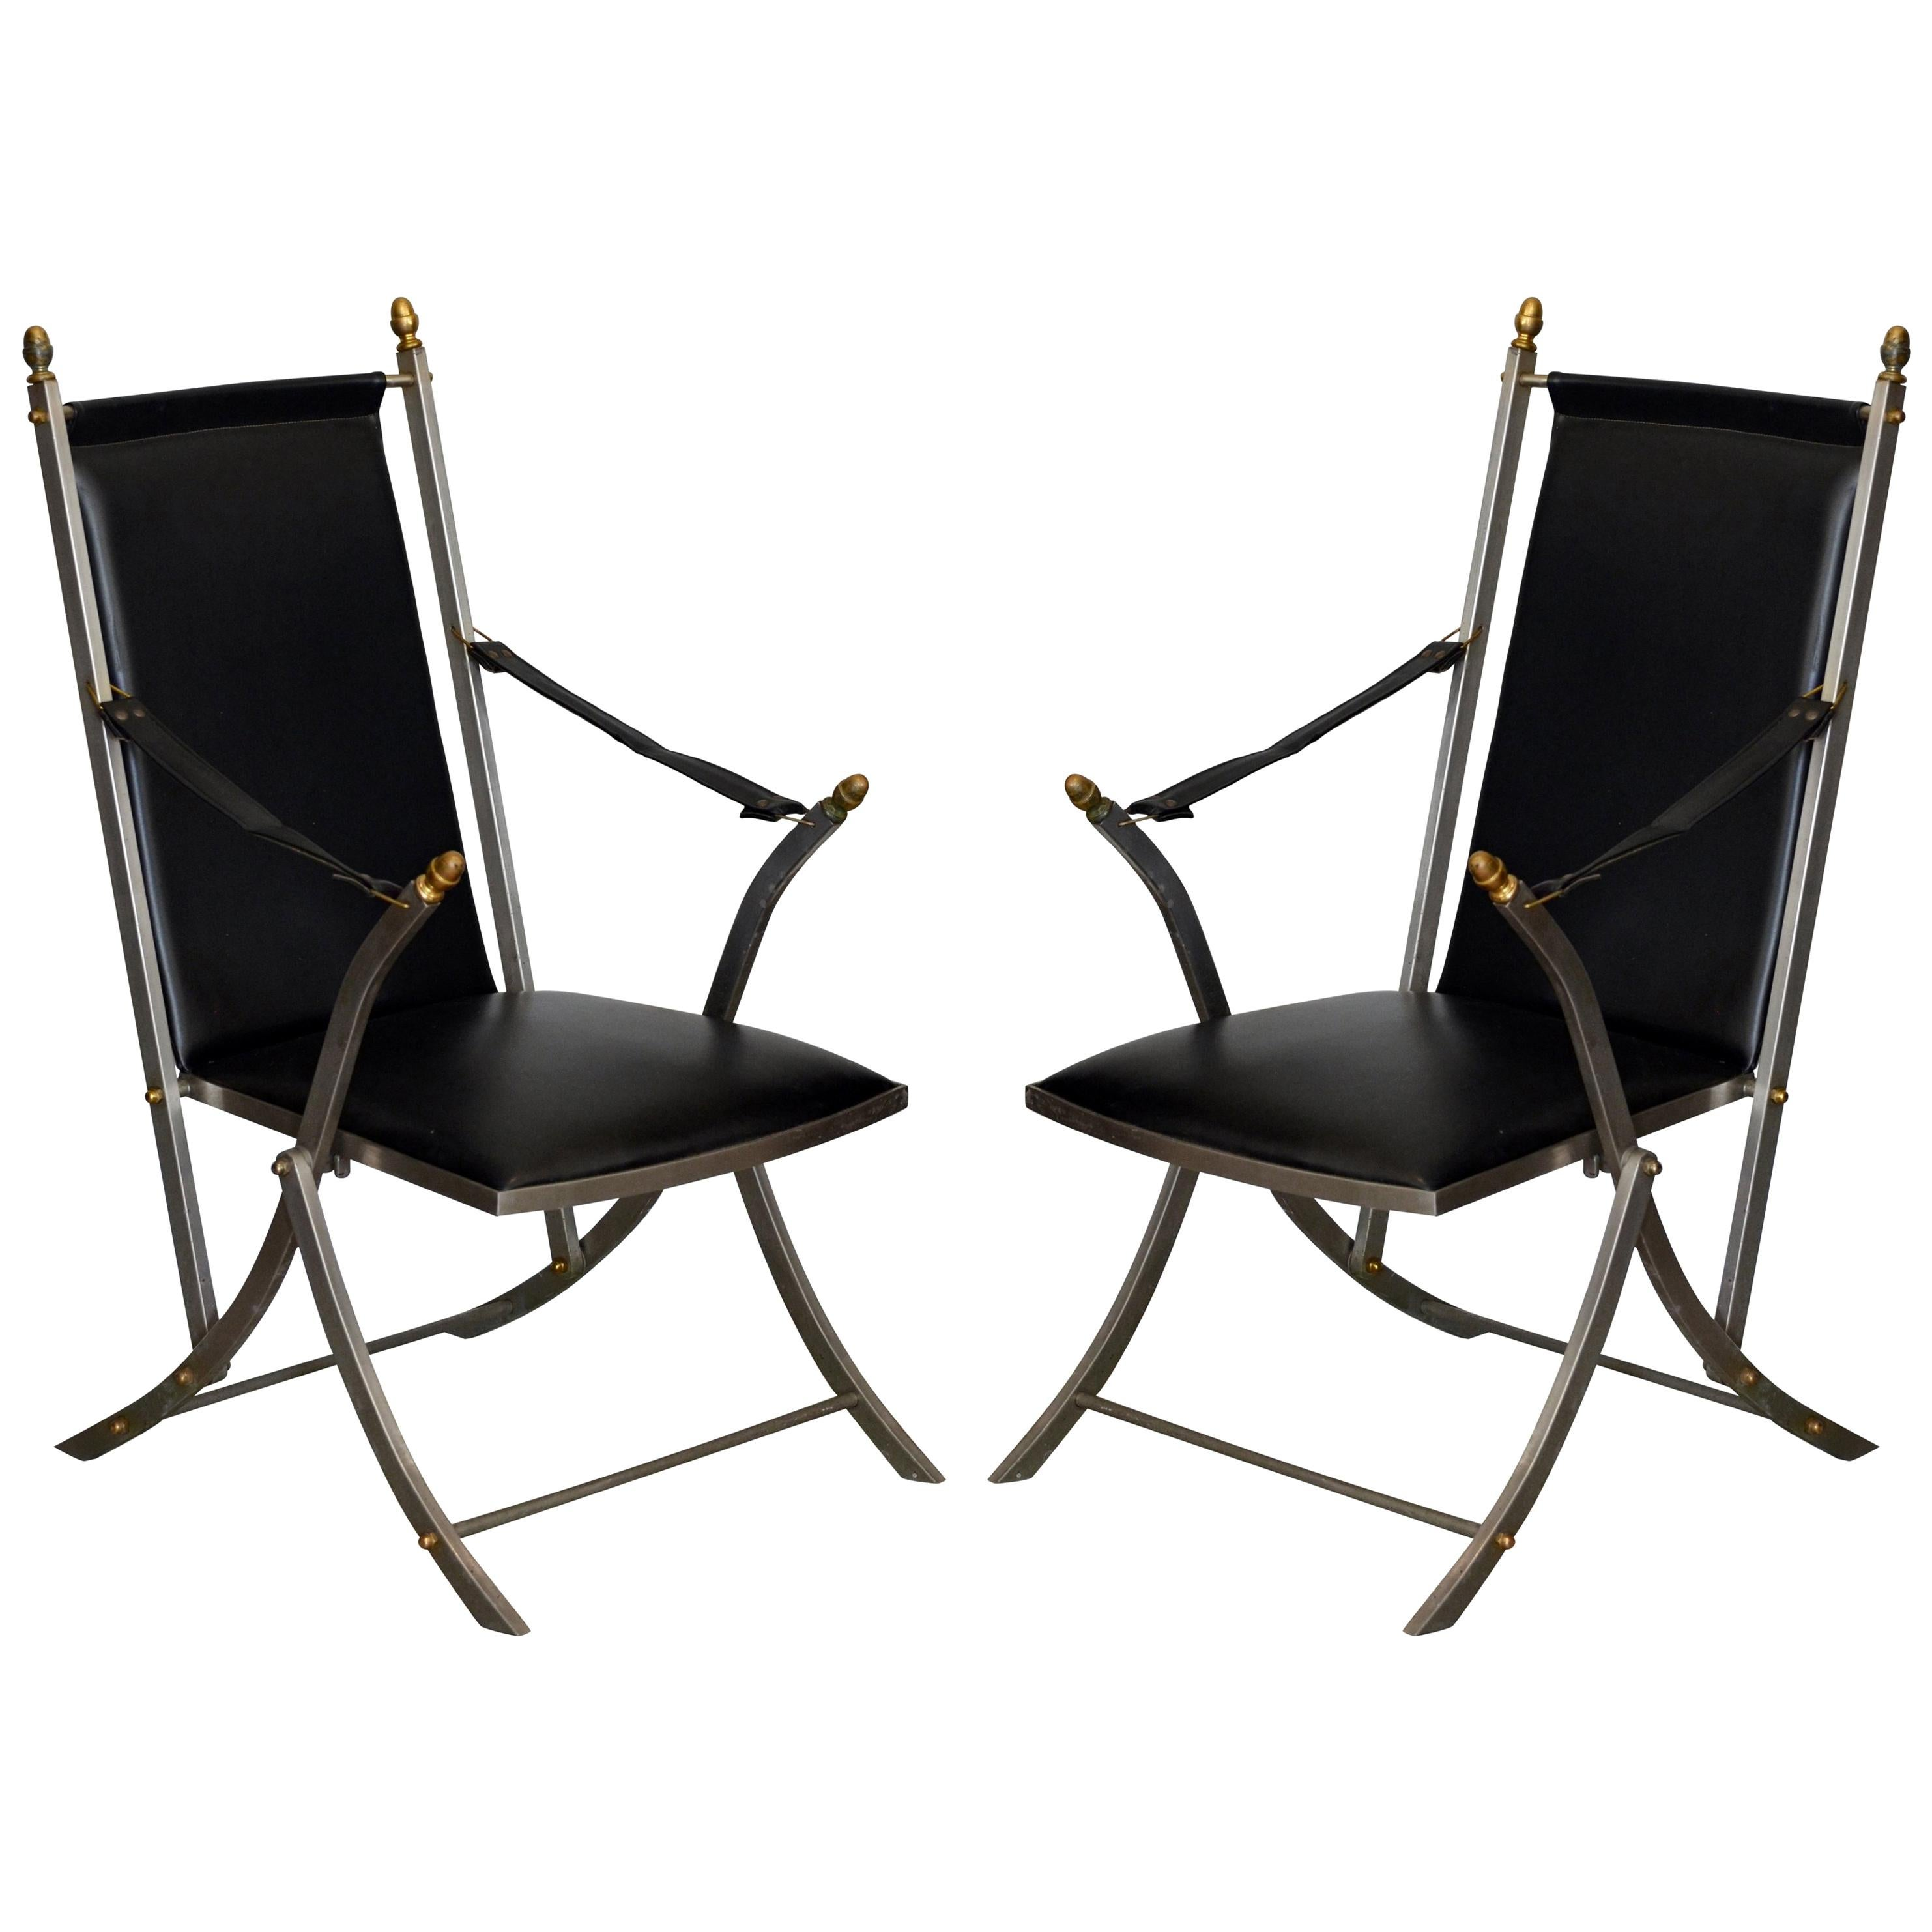 Pair of Chic Folding Campaign Armchairs in the Style of Maison Jansen